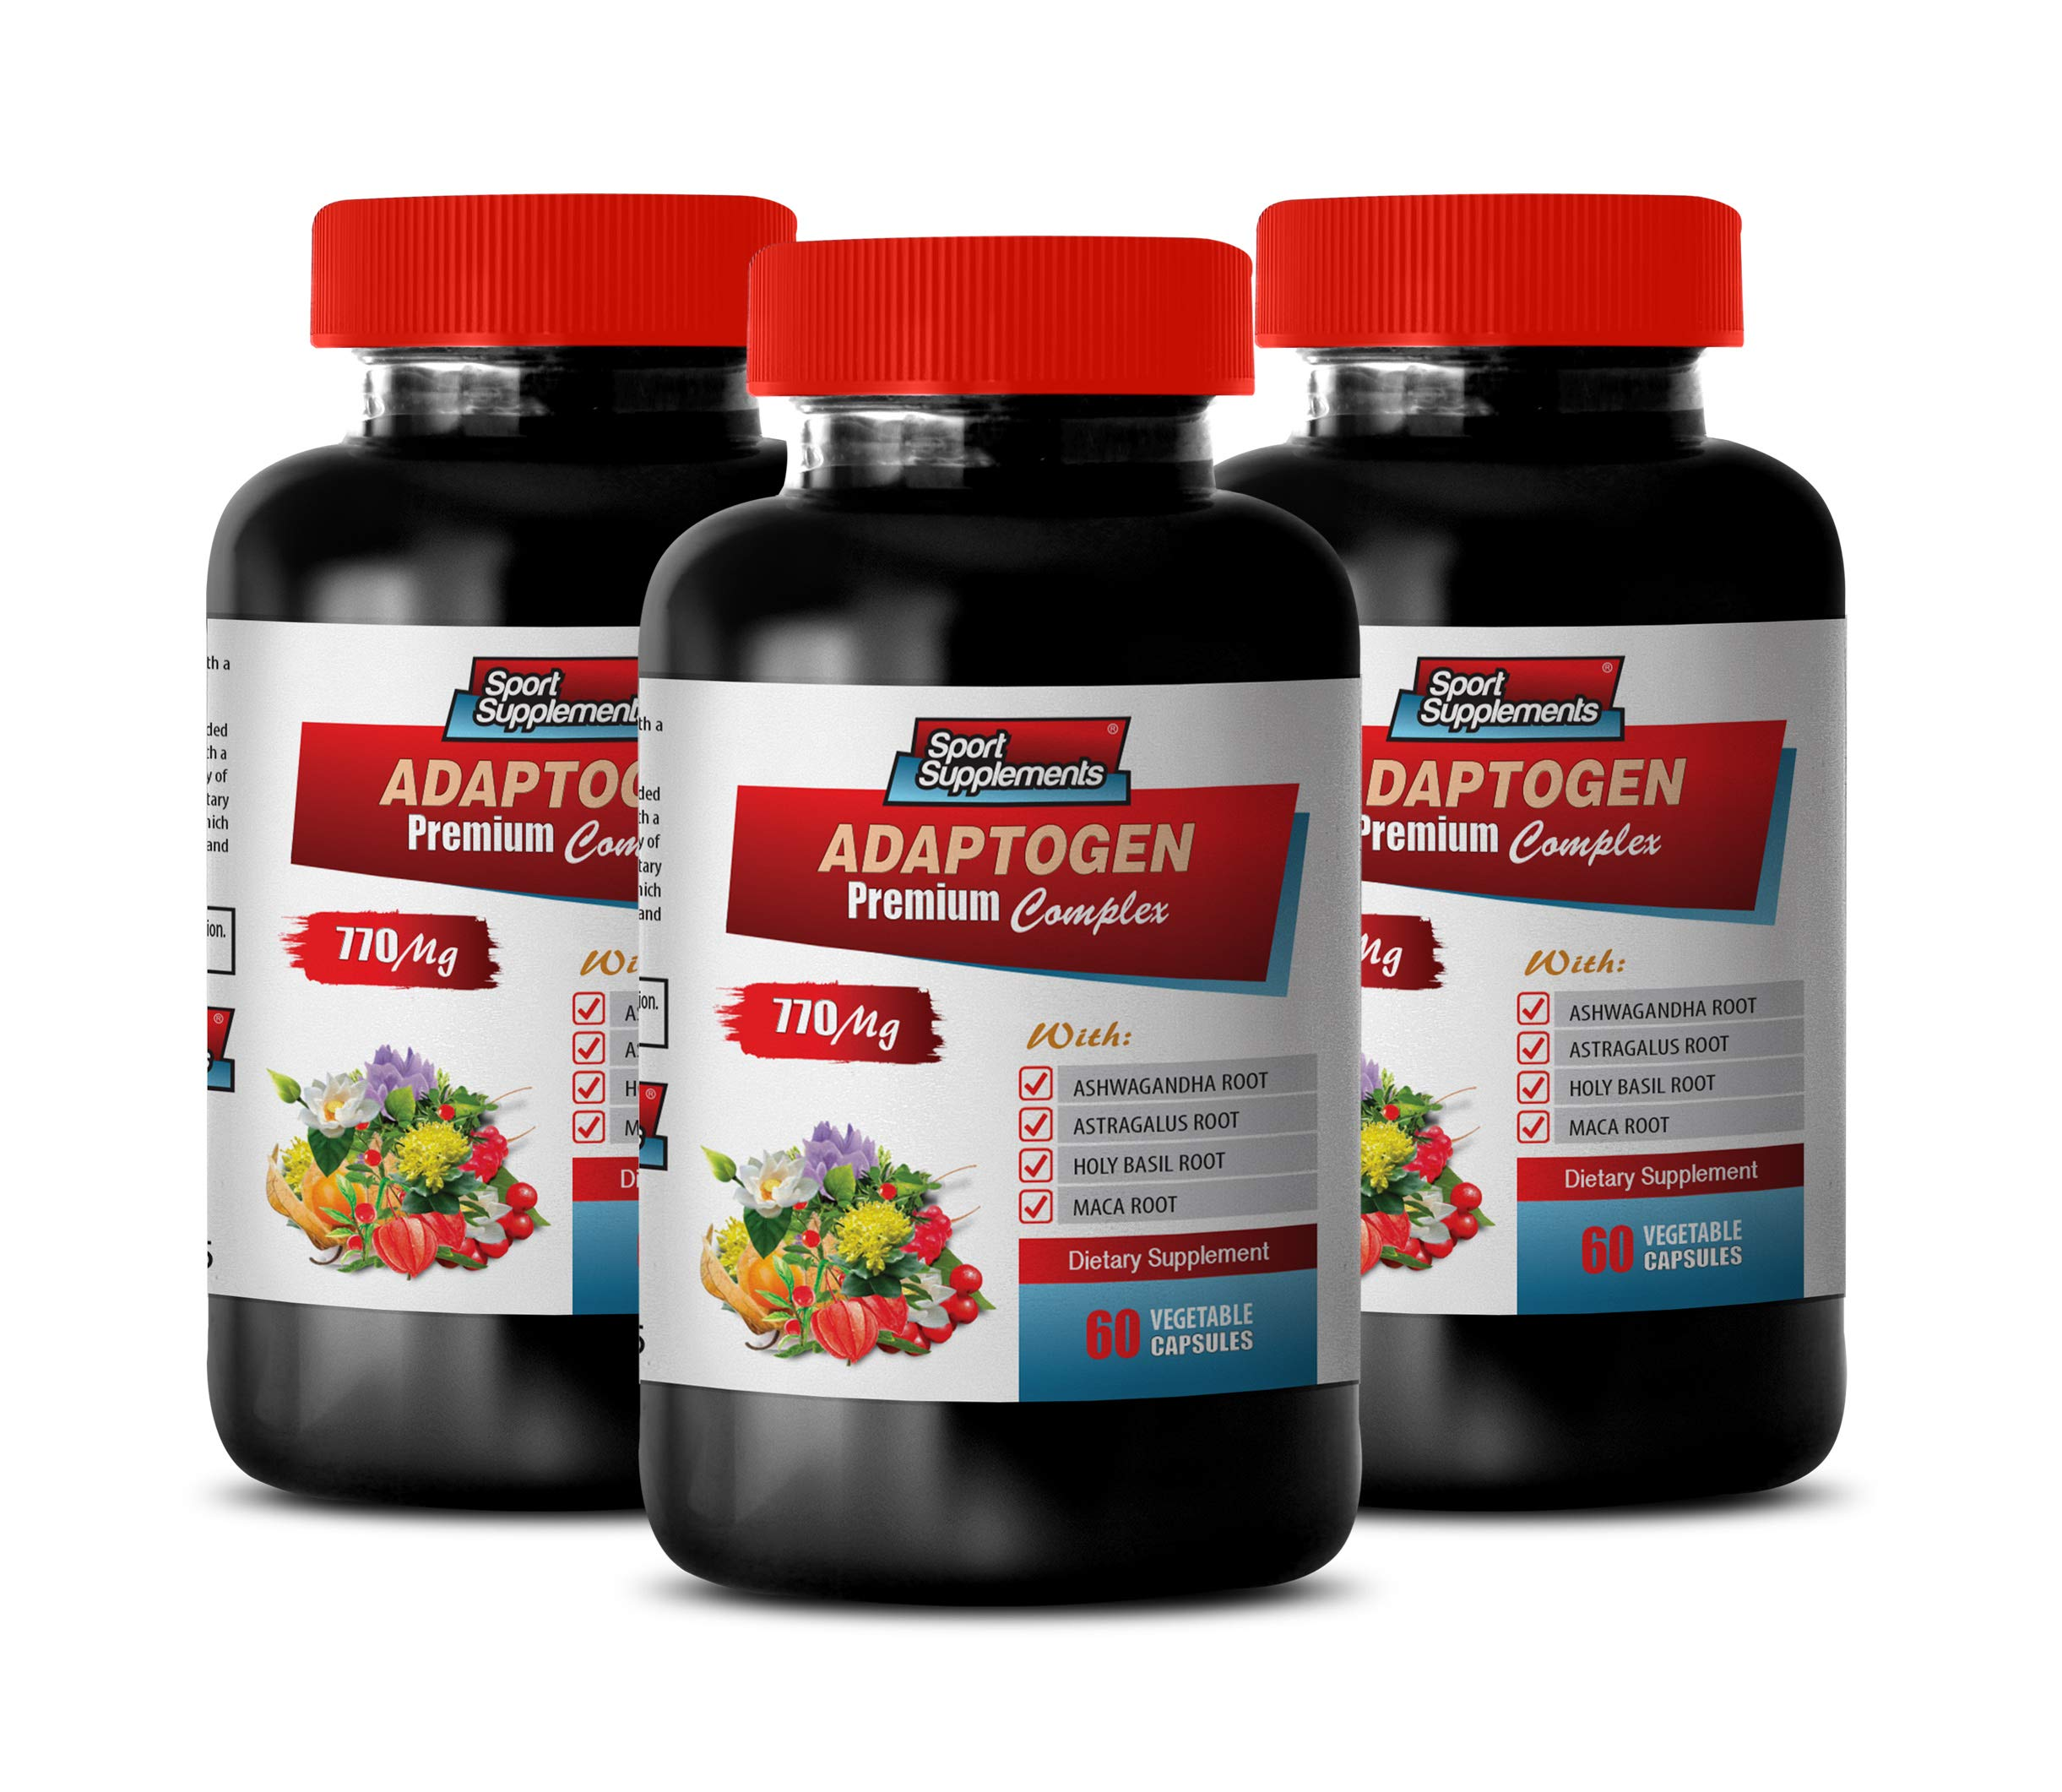 Anxiety and Stress Relief Supplements - ADAPTOGEN Premium Complex 770MG - maca Root Supplement - 3 Bottles 180 Vegetable Capsules